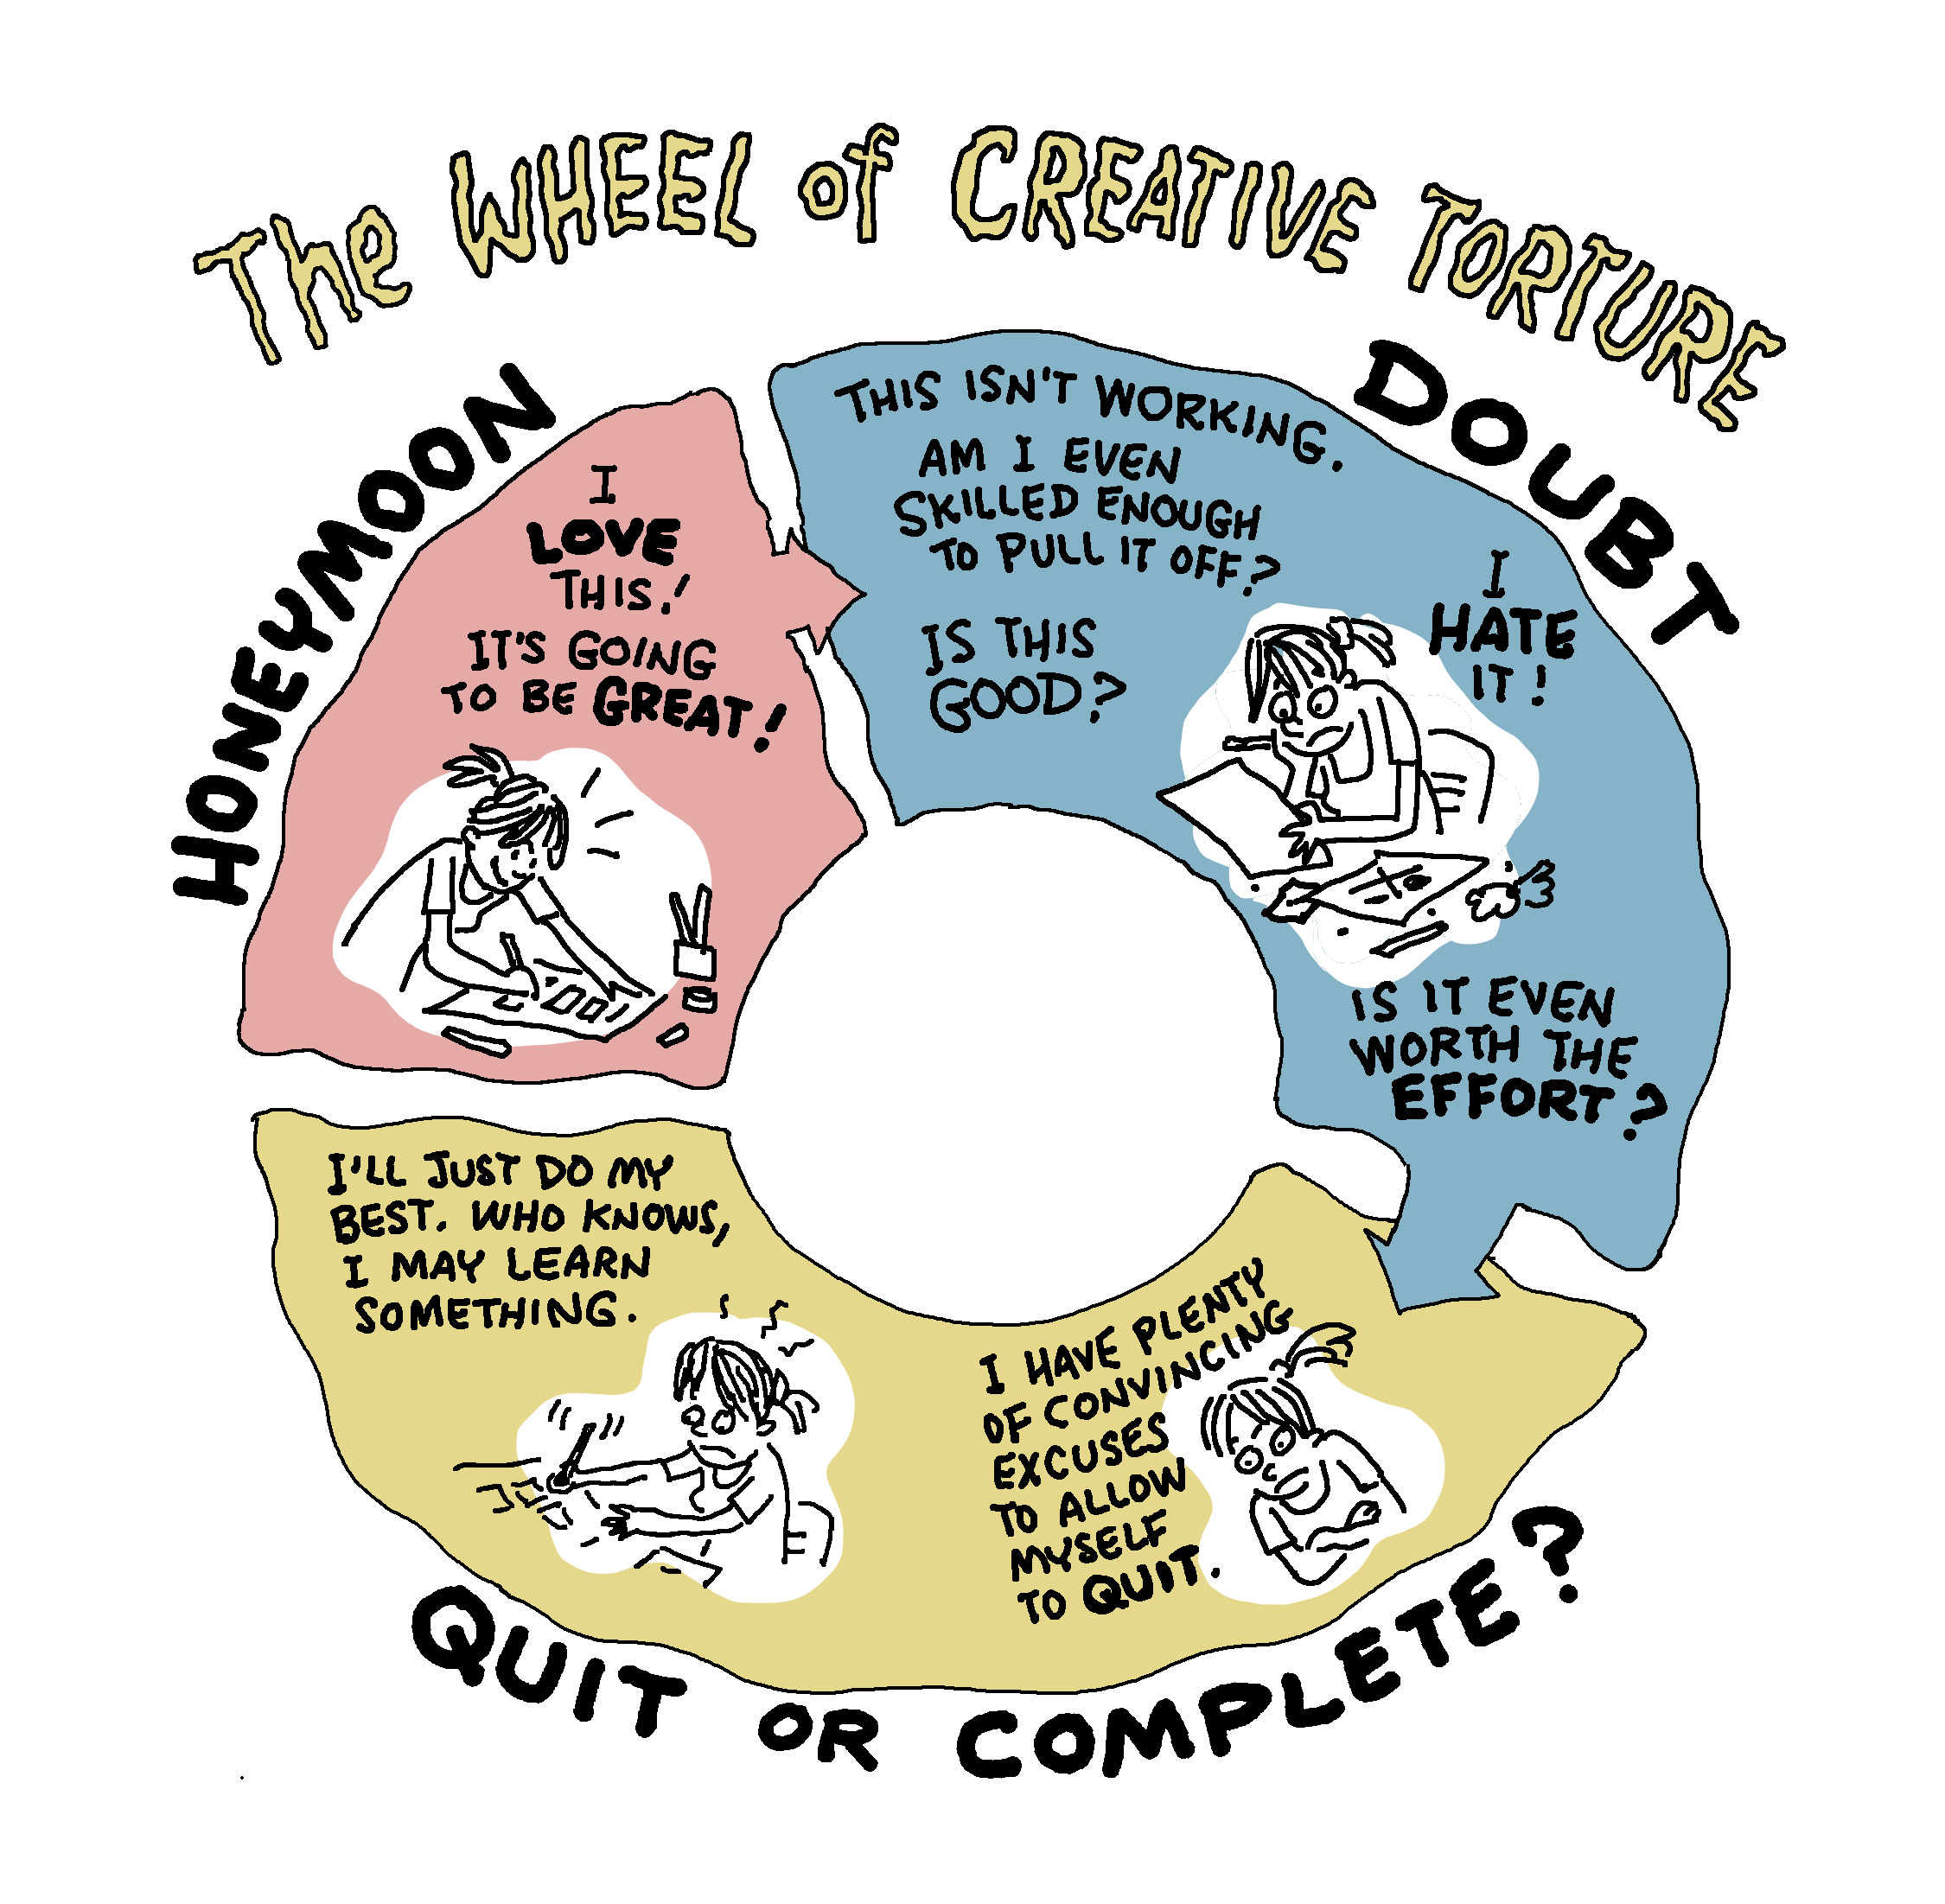 The three stages of creative torture. The honeymoon is the most inspiring and fun stage, then doubt steps in, and with it, a waning confidence in your abilities, or the project itself. Lastly, the stage that determines whether you quit and move on to another project, or stick with it through to the finish. A warning about stage three, don't always be quitting or you'll never finish anything.